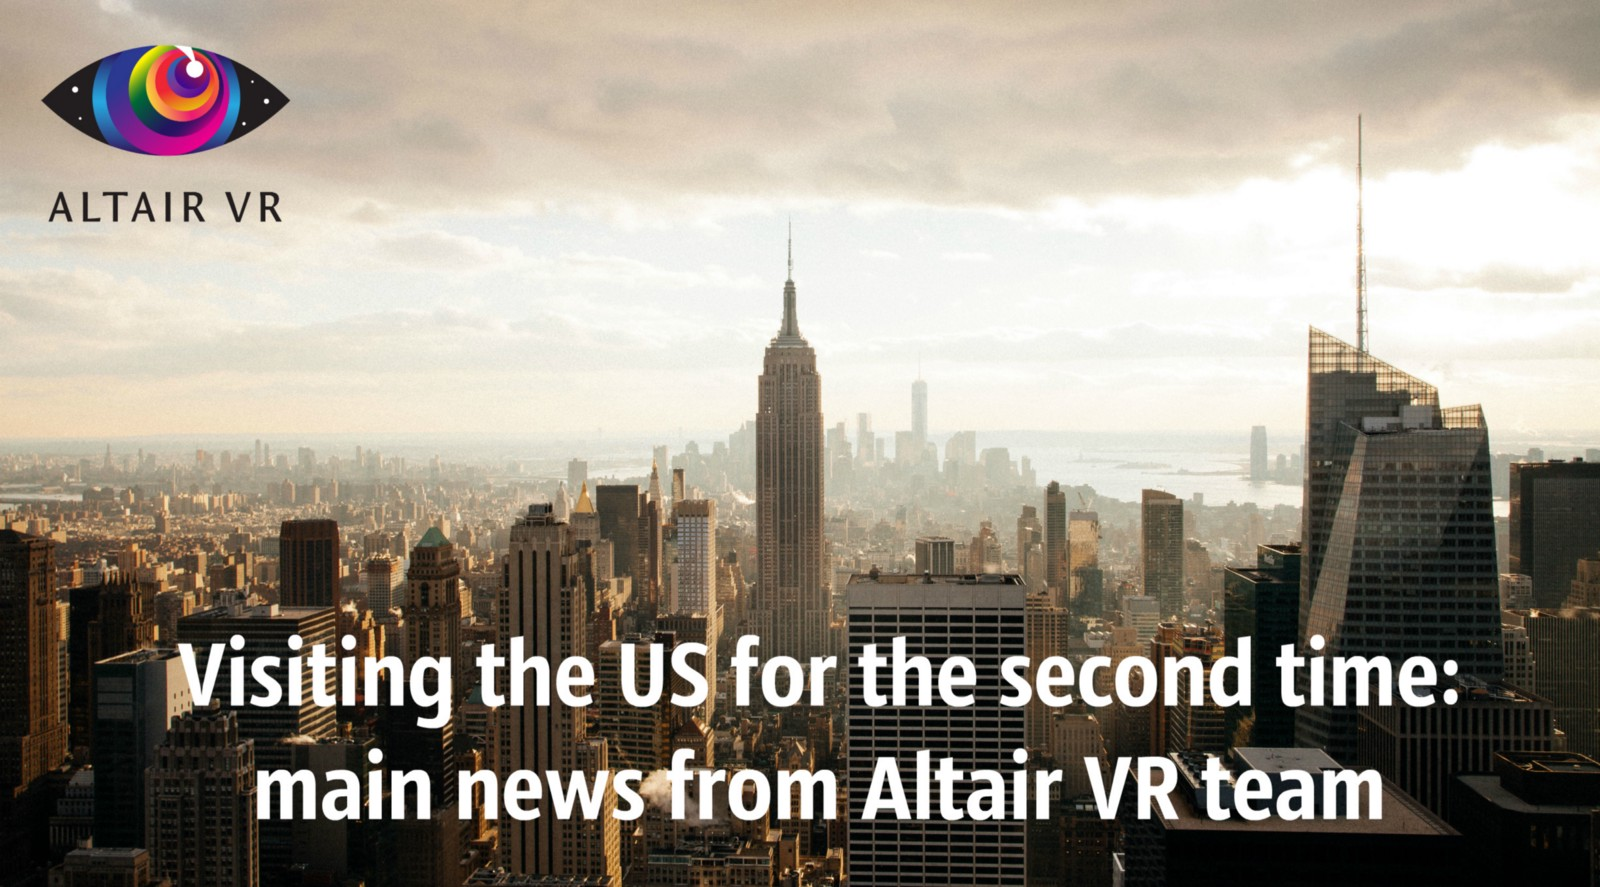 775576a623 Visiting the US for the second time  main news from Altair VR team